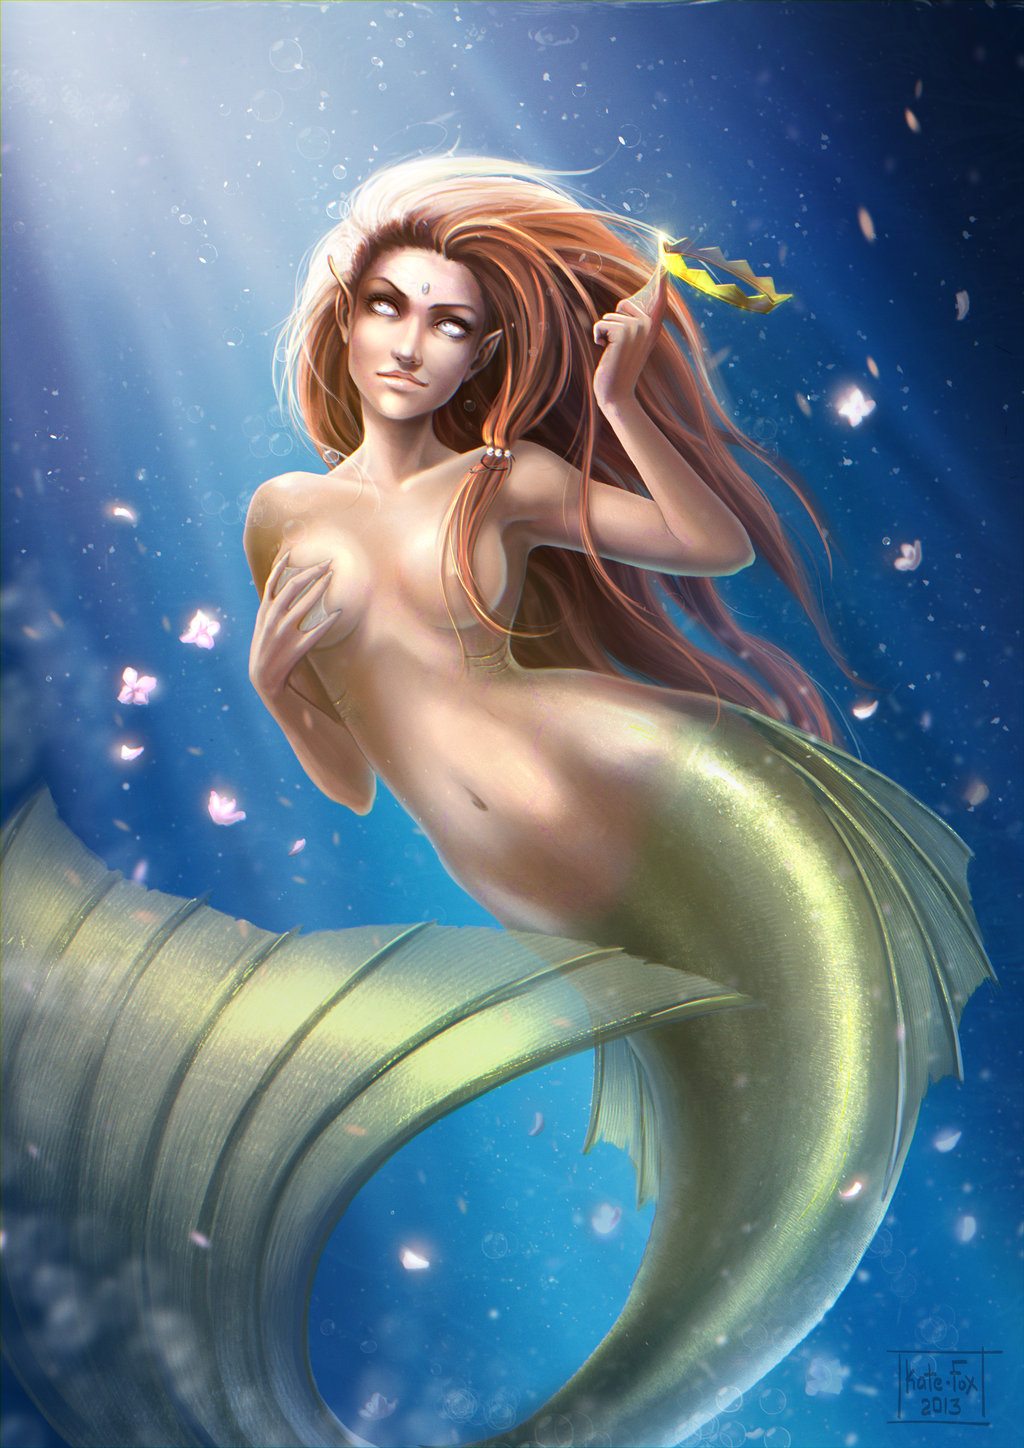 mermaid_by_kate_fox-d5tgidk.jpg